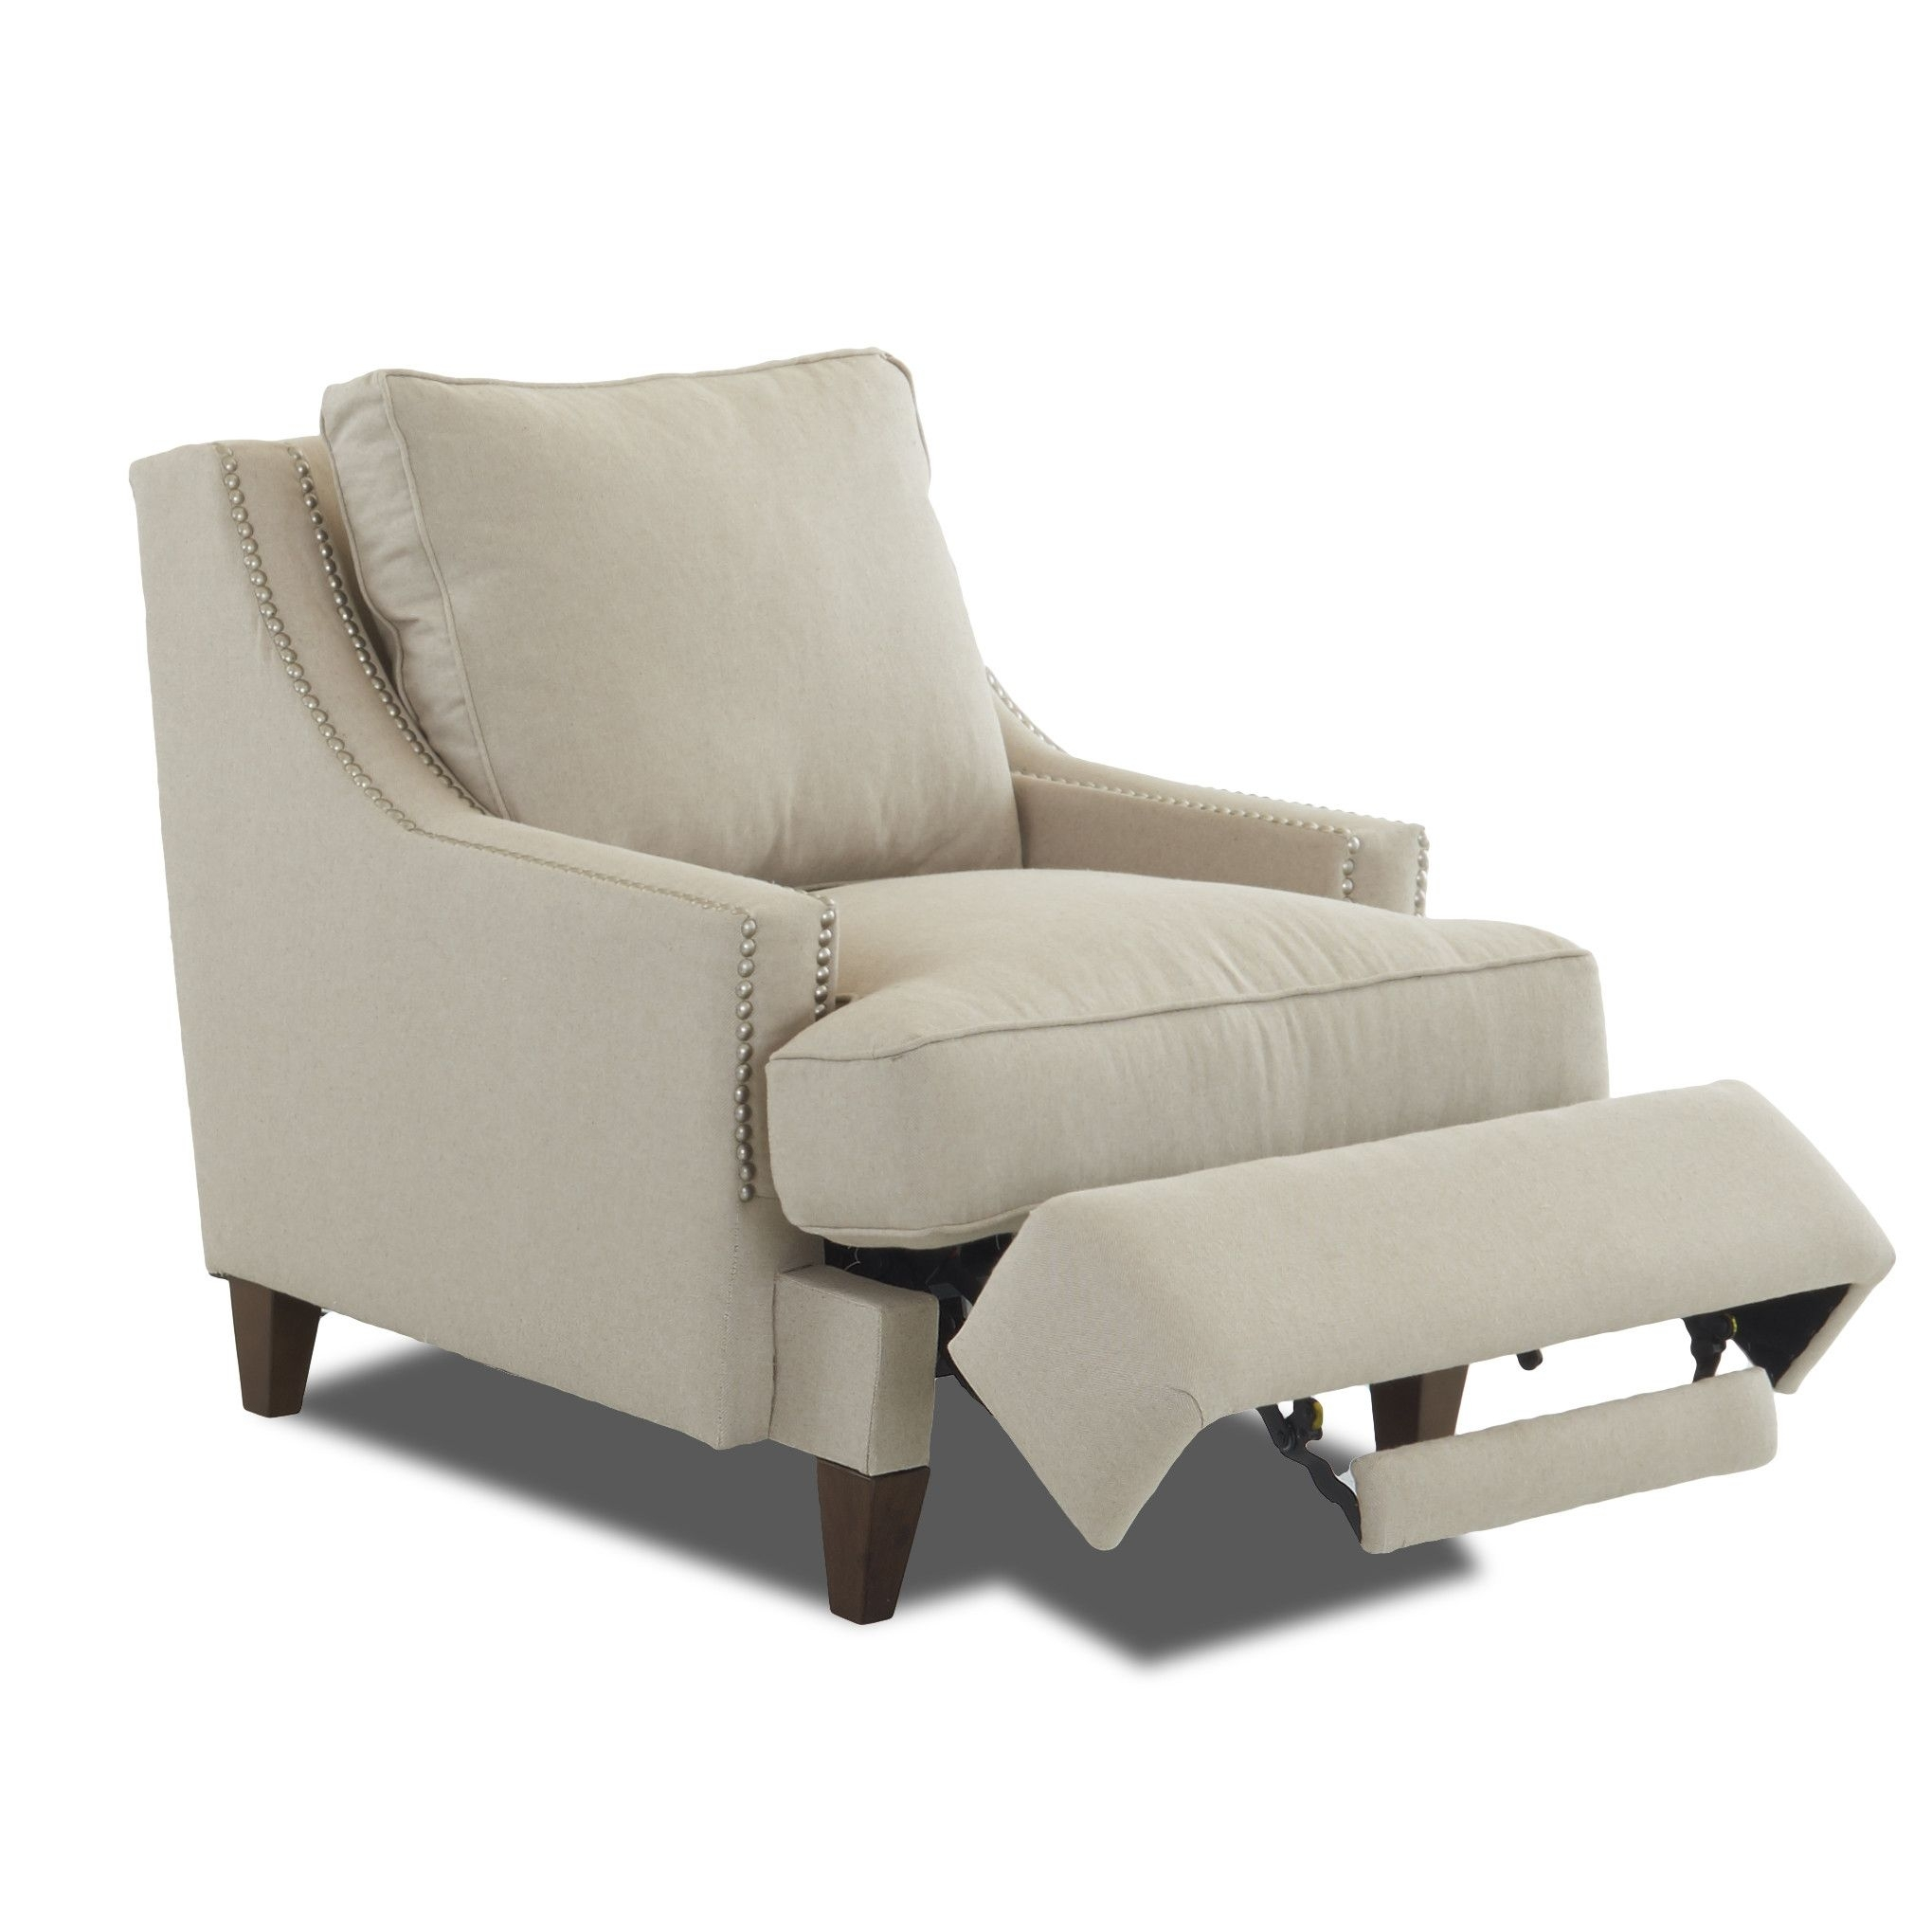 Tricia Power Recliner | For House #2 | Pinterest | Recliner, Chair With Travis Dk Grey Leather 6 Piece Power Reclining Sectionals With Power Headrest & Usb (Image 24 of 25)